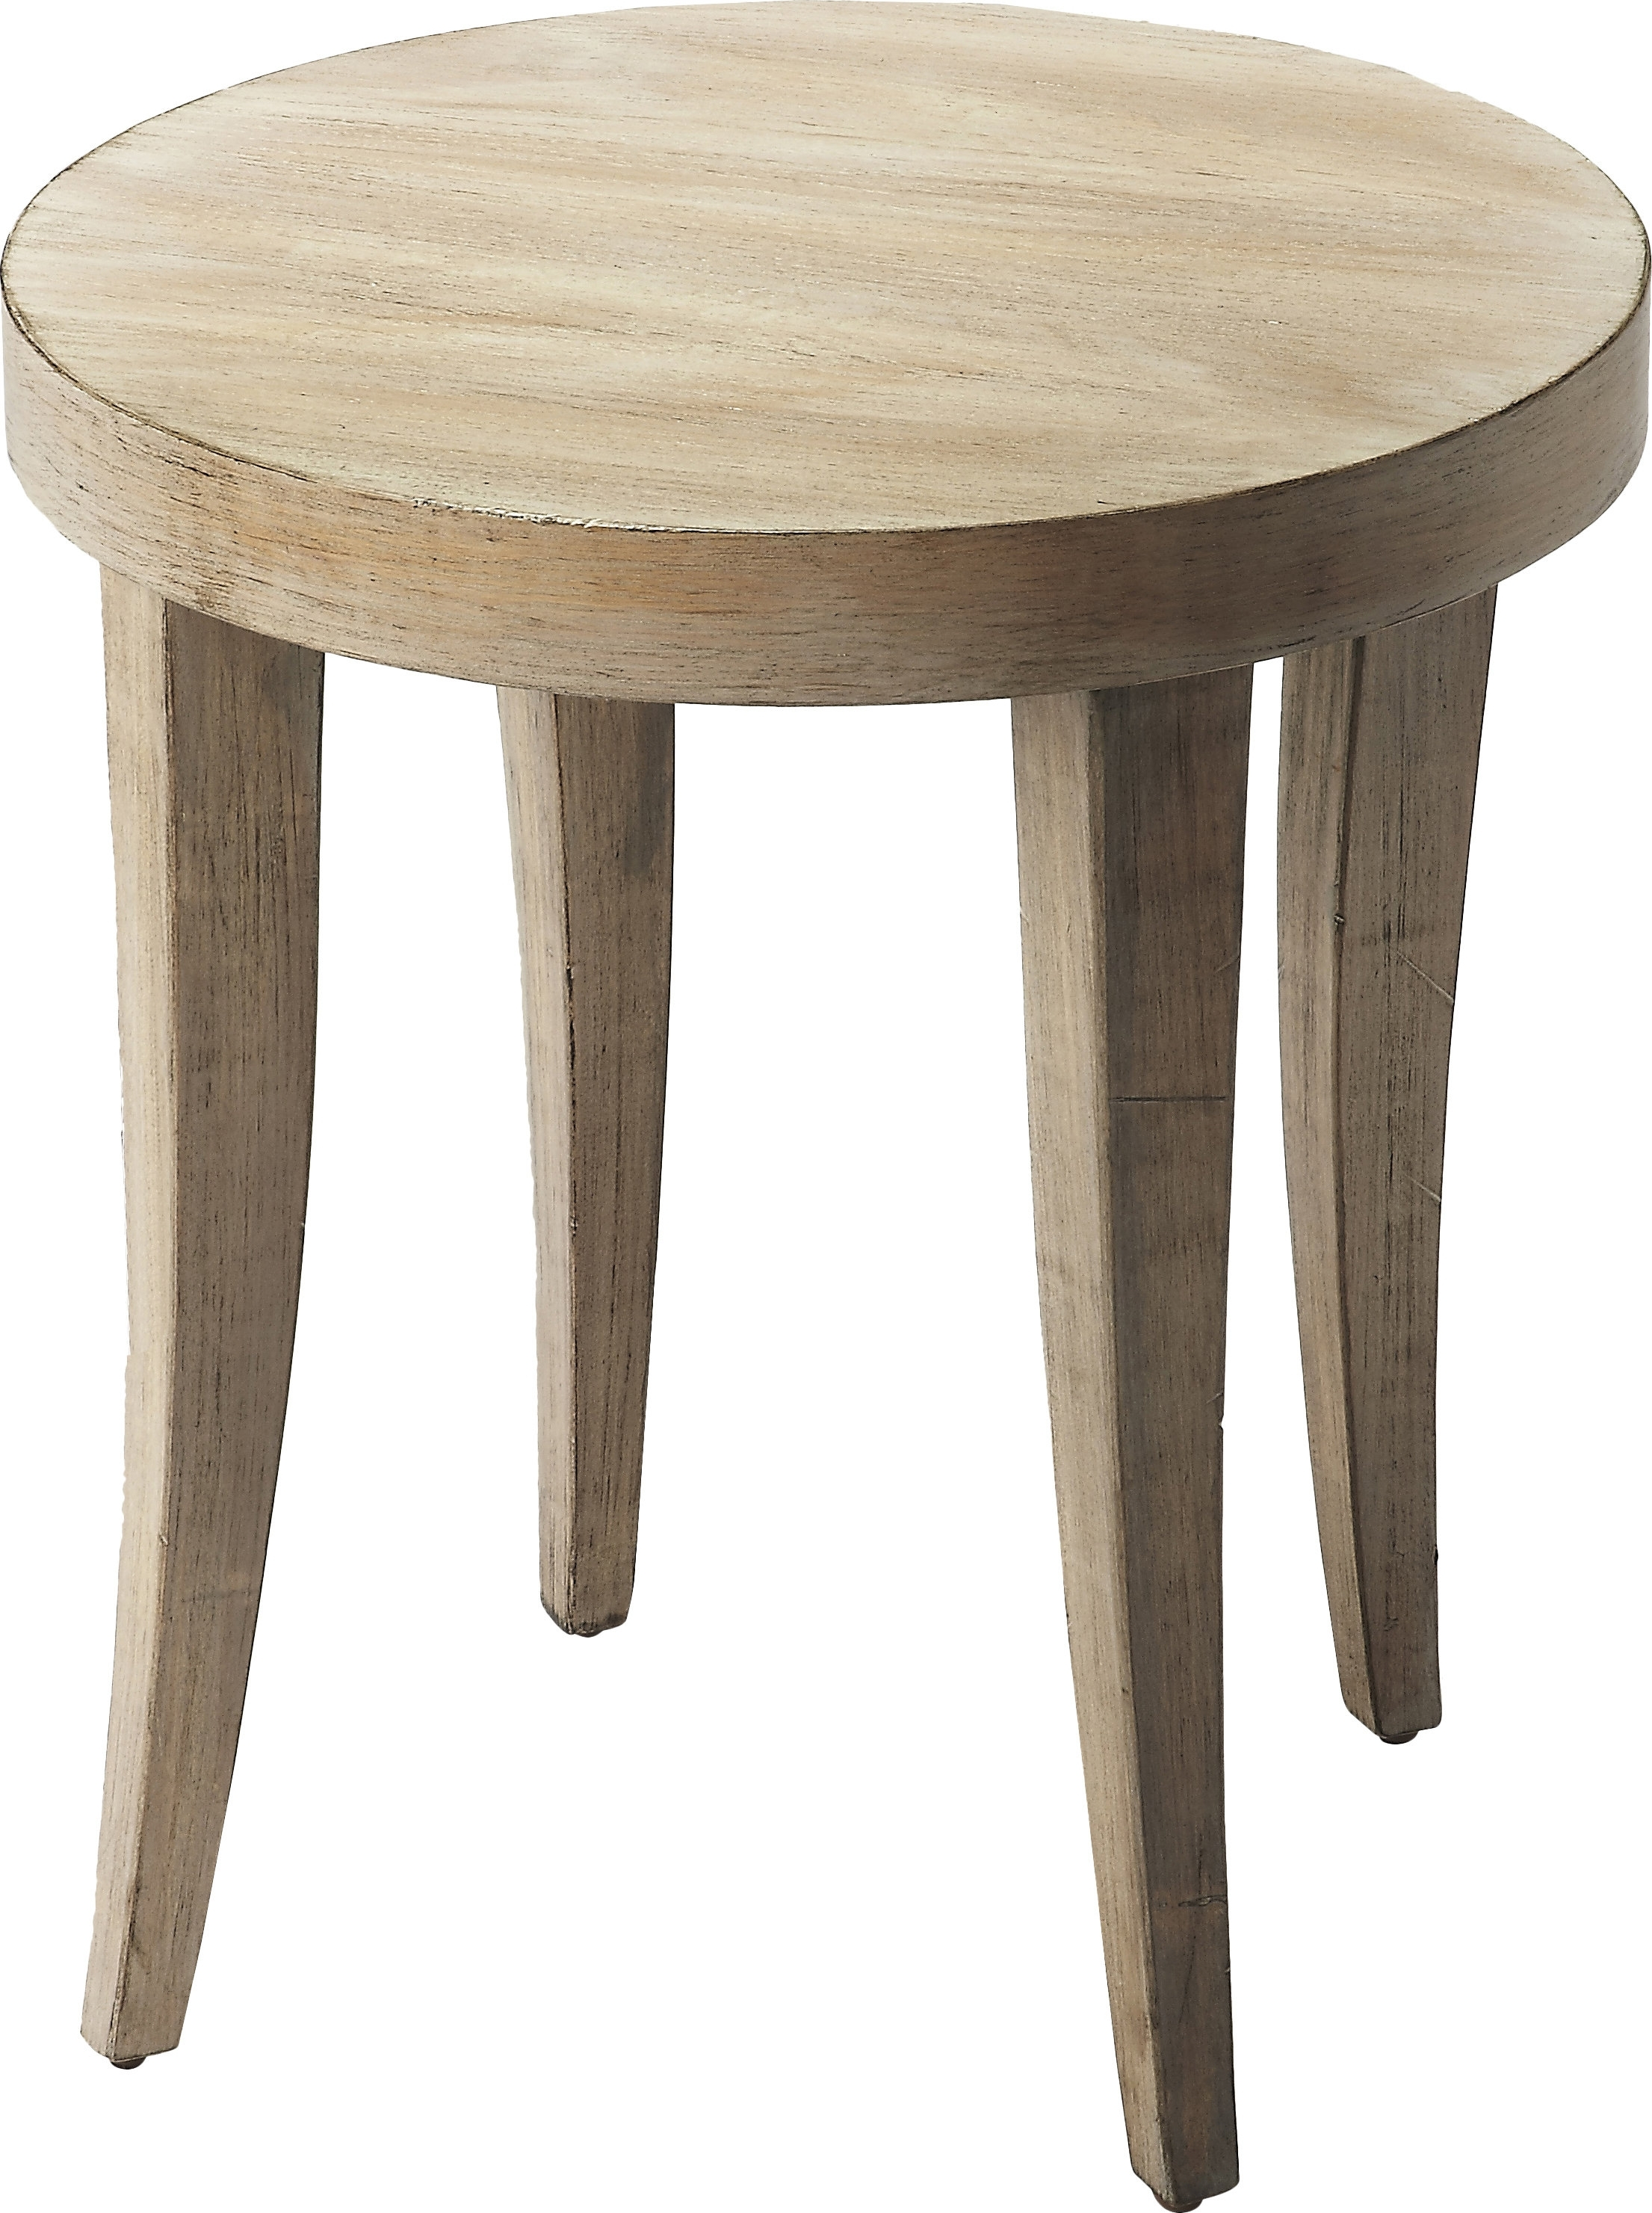 Alcott Hill Kildare Seton End Table | Wayfair throughout Oslo Burl Wood Veneer Coffee Tables (Image 1 of 30)